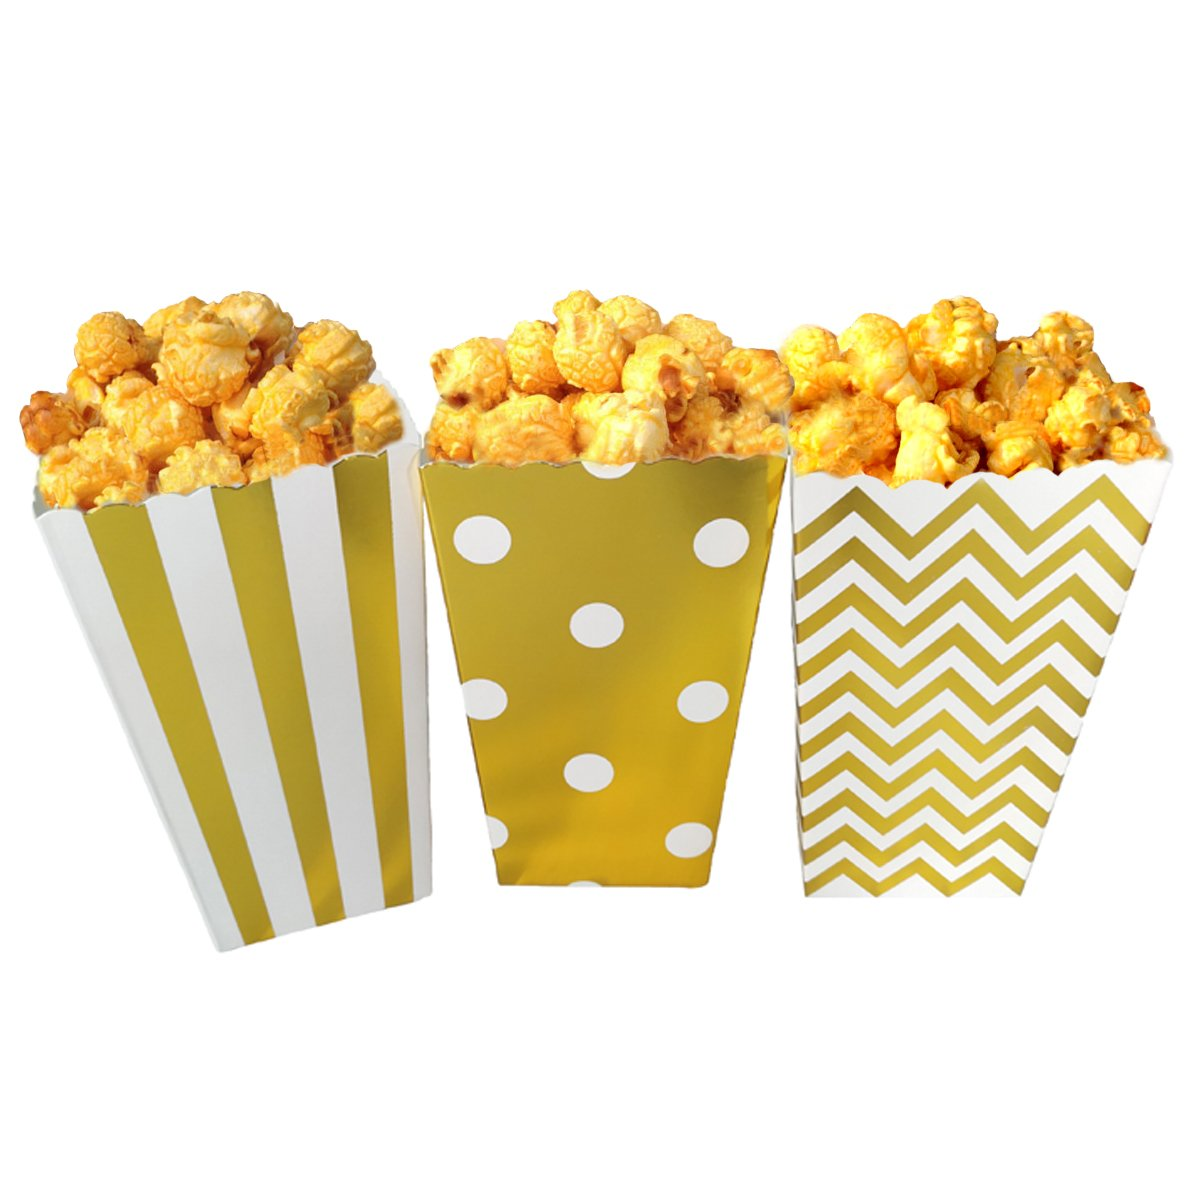 JCX Paper Popcorn Bags, Mini Movie Theater Party Paper Bags, 36 Pieces,Gold